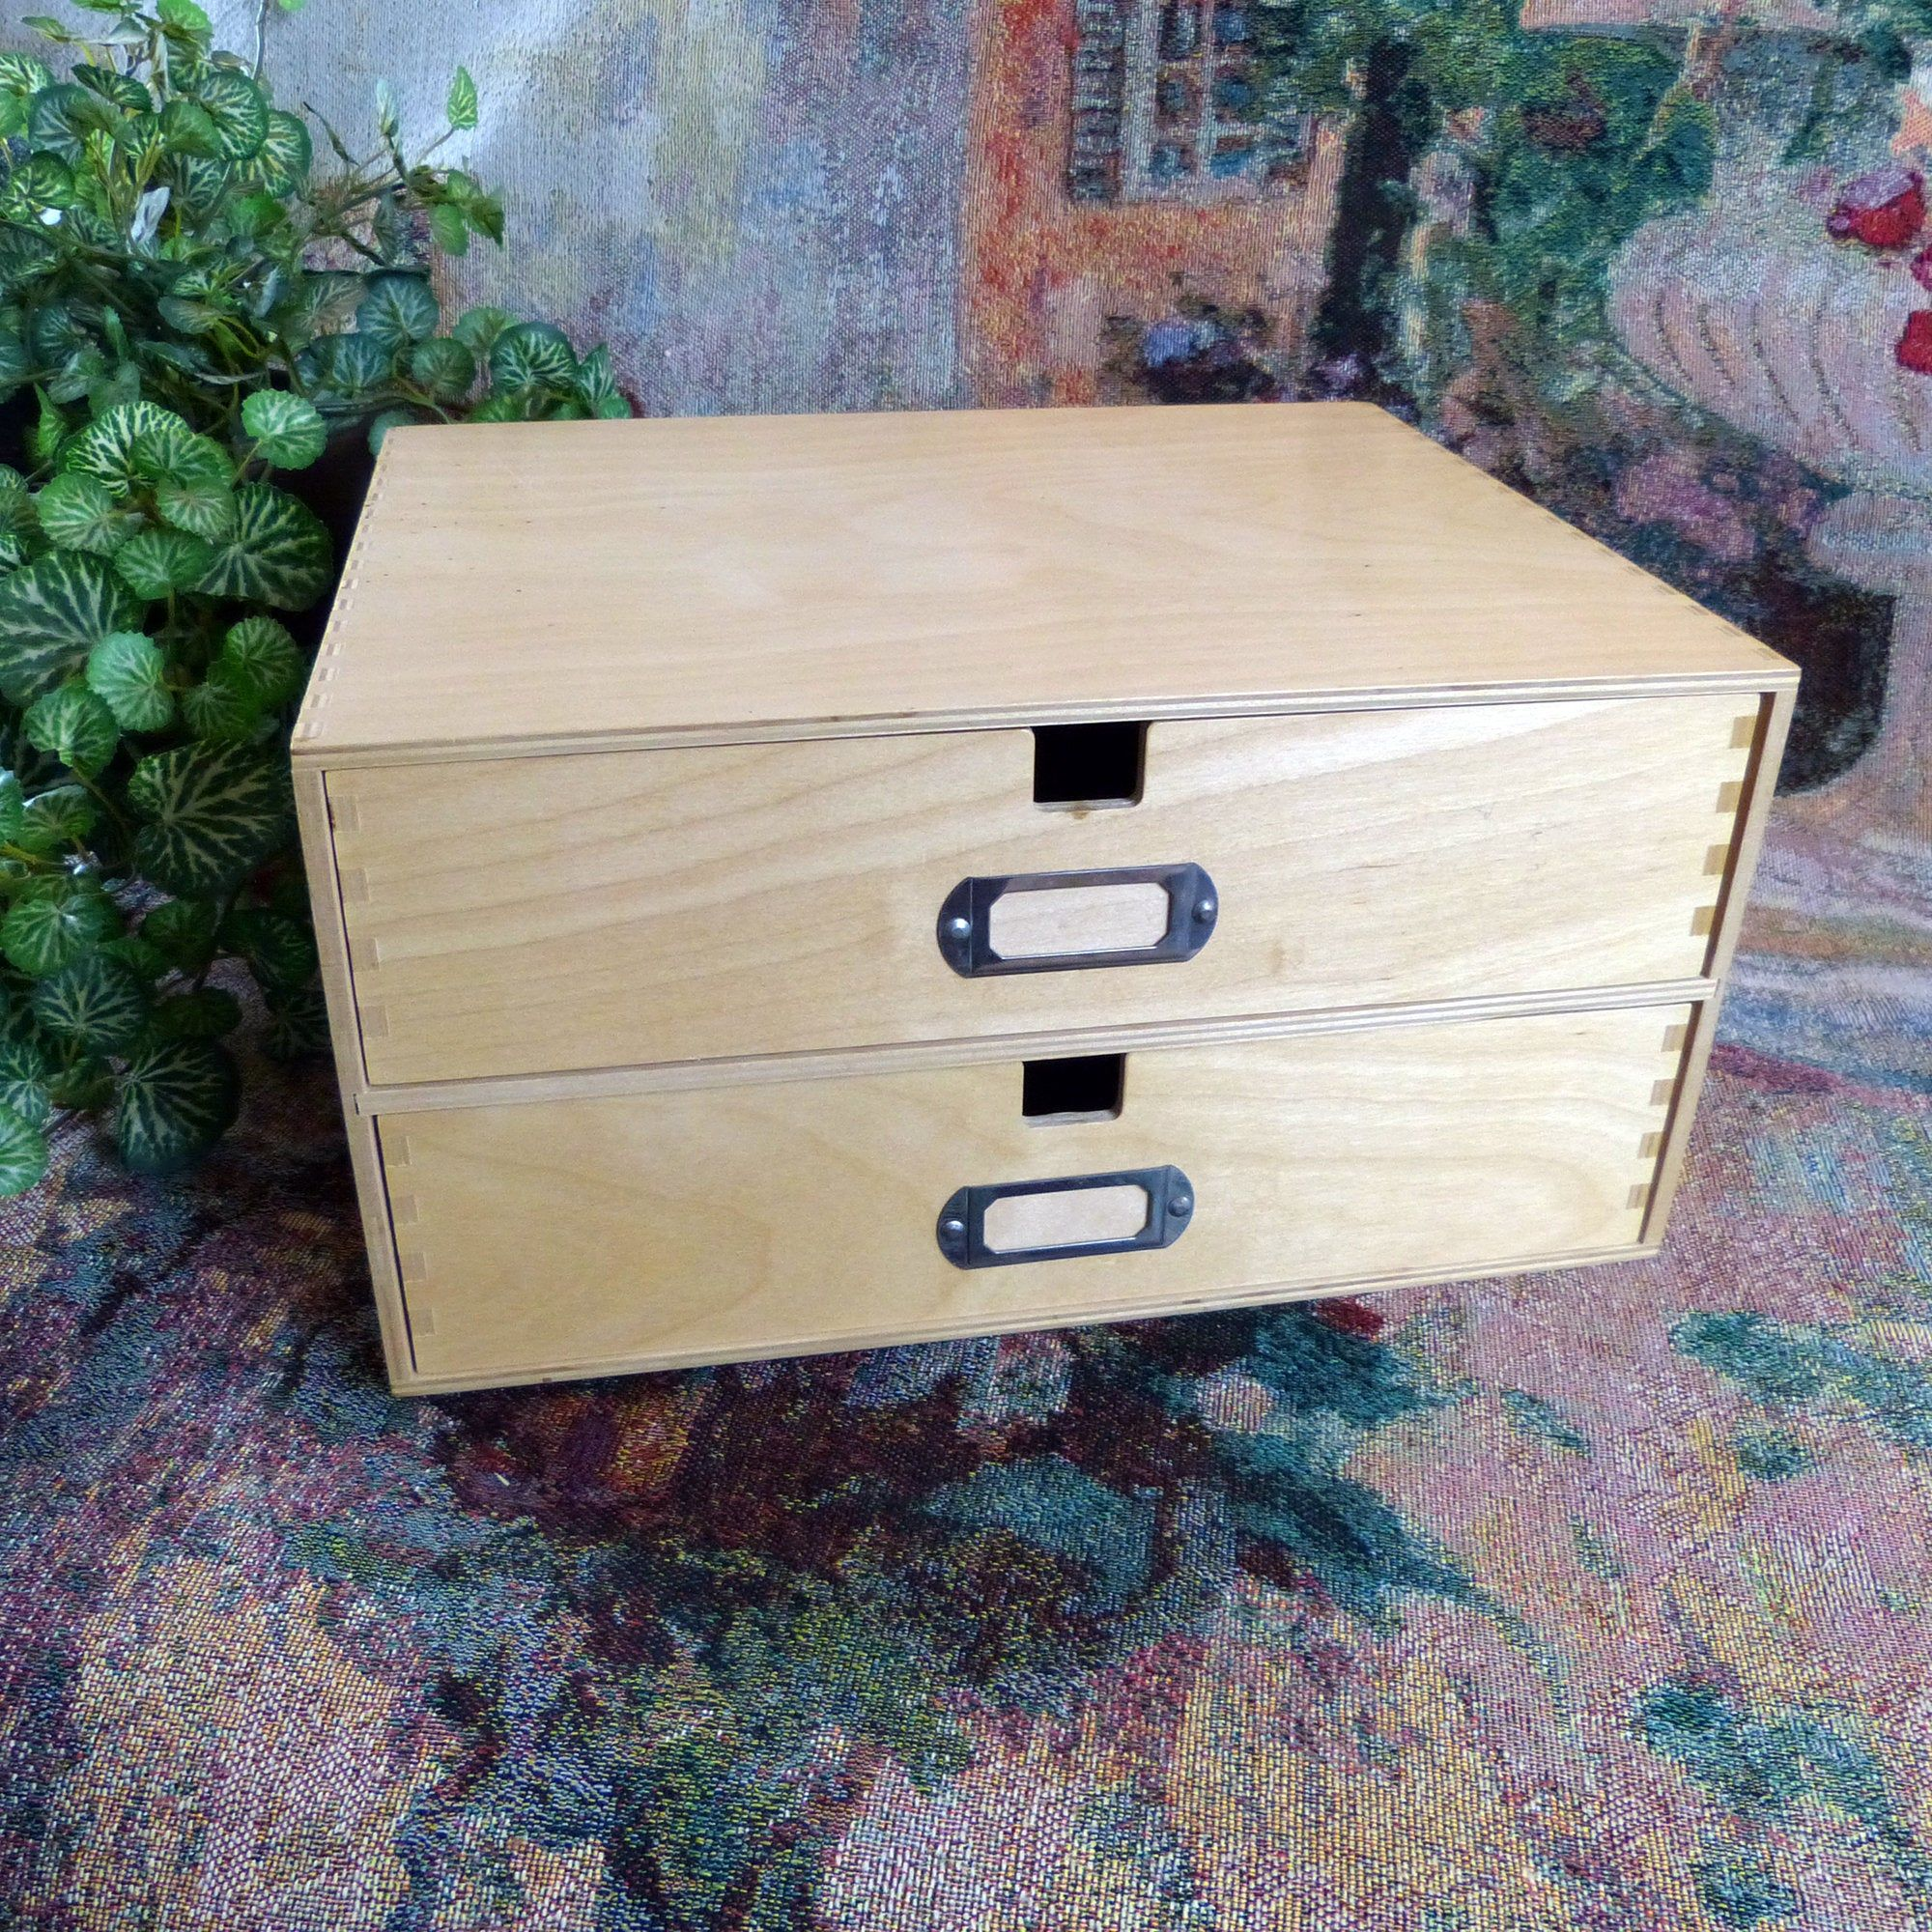 Office Paper Letter Box With Two Drawers Natural Wood Office Paper Letter Paper Letter Box